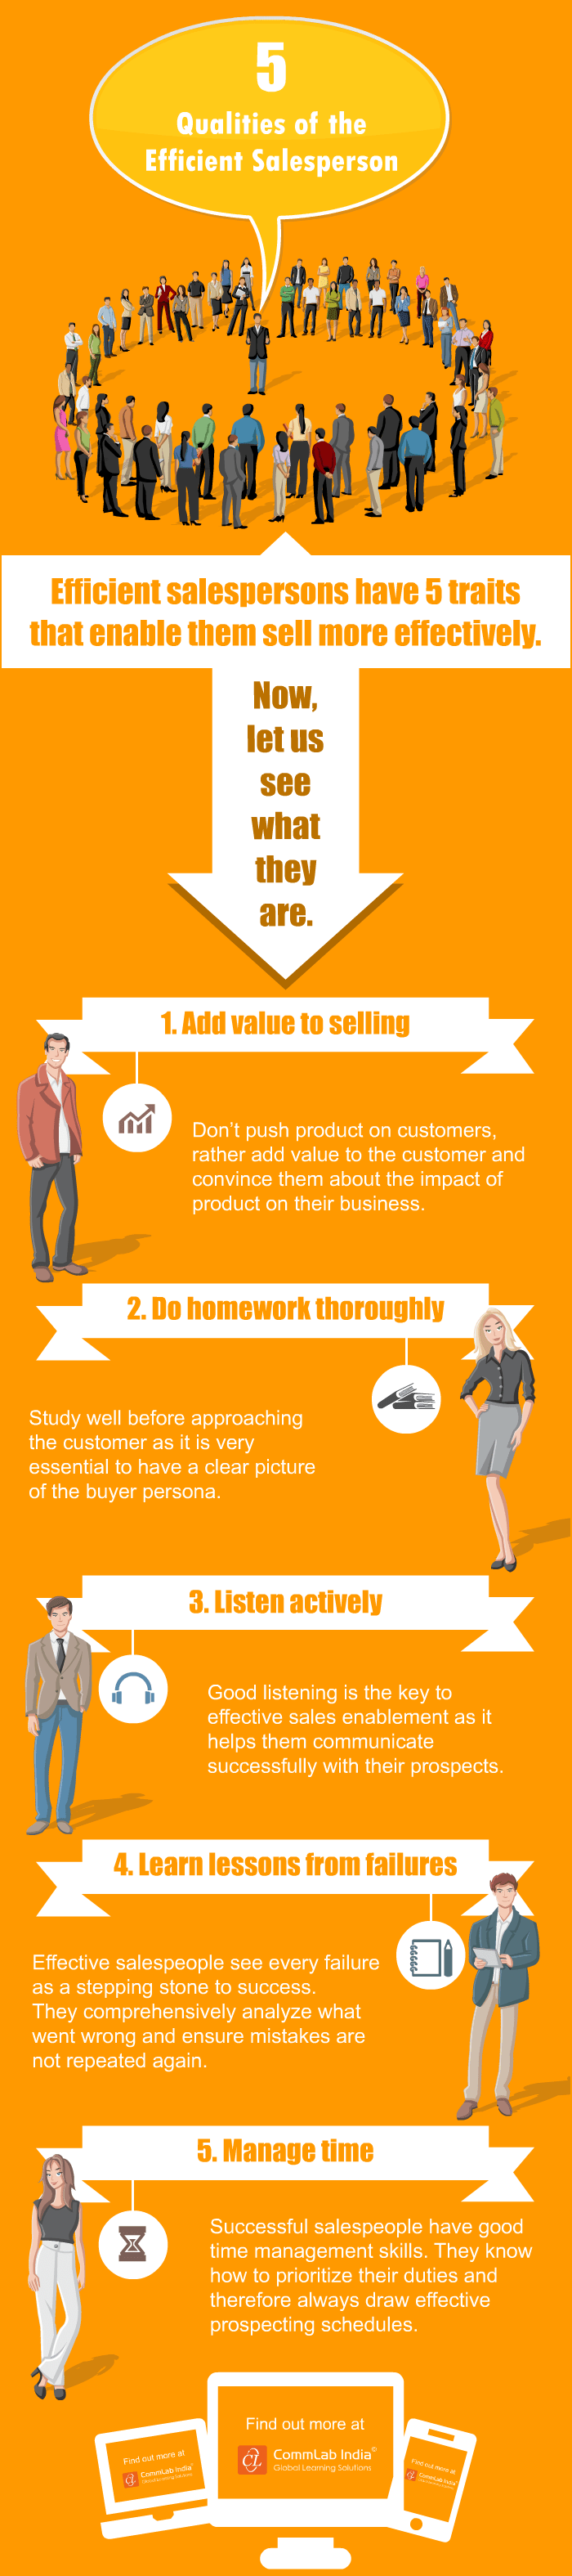 5 Qualities of an Efficient Salesperson [Infographic]